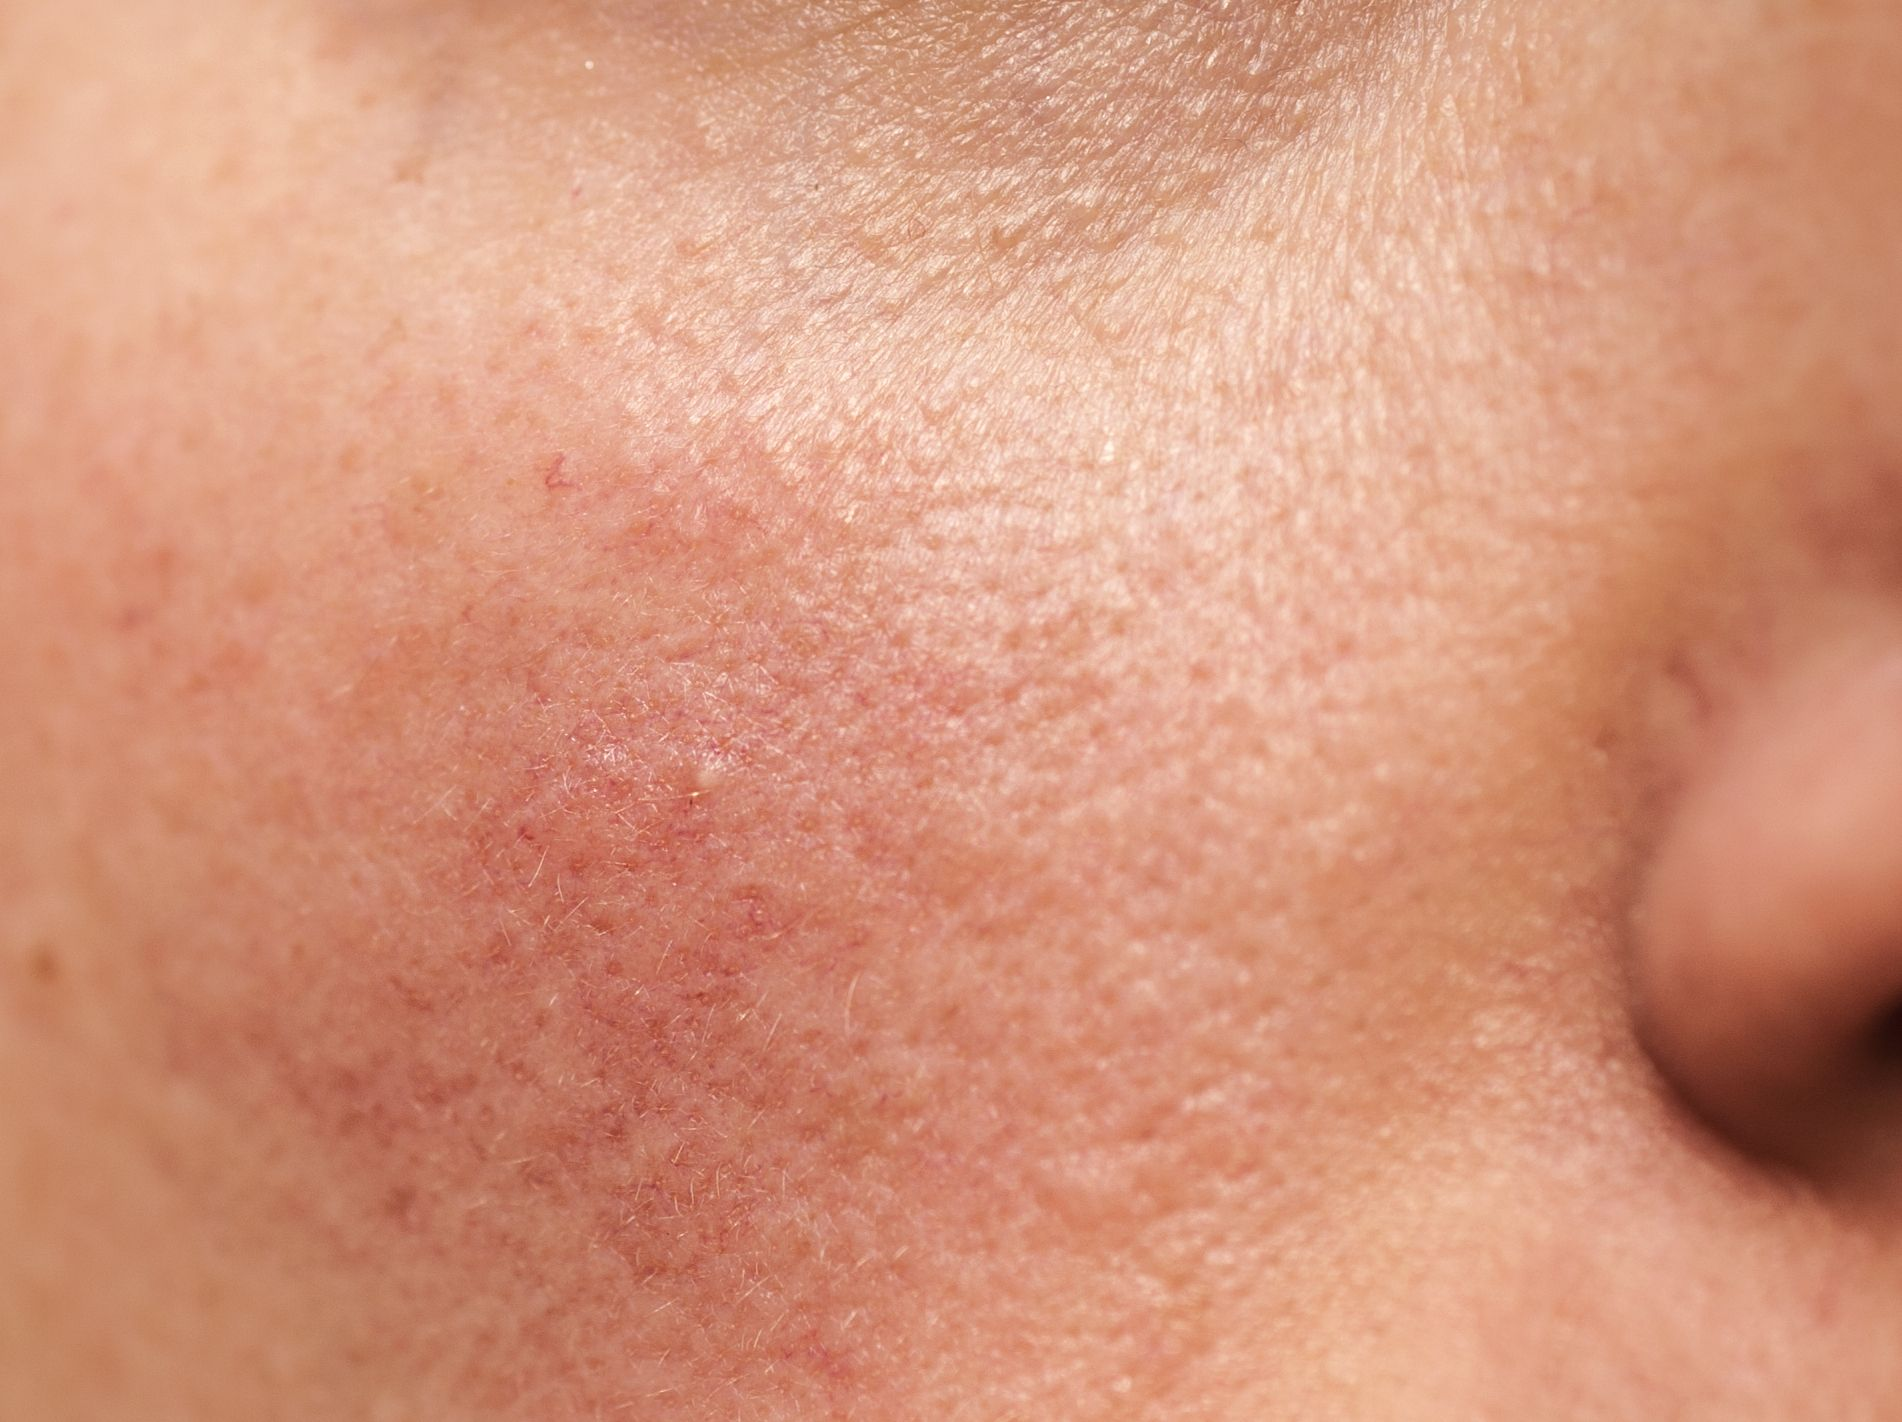 Best Rosacea Treatments According To A Dermatologist Rosacea